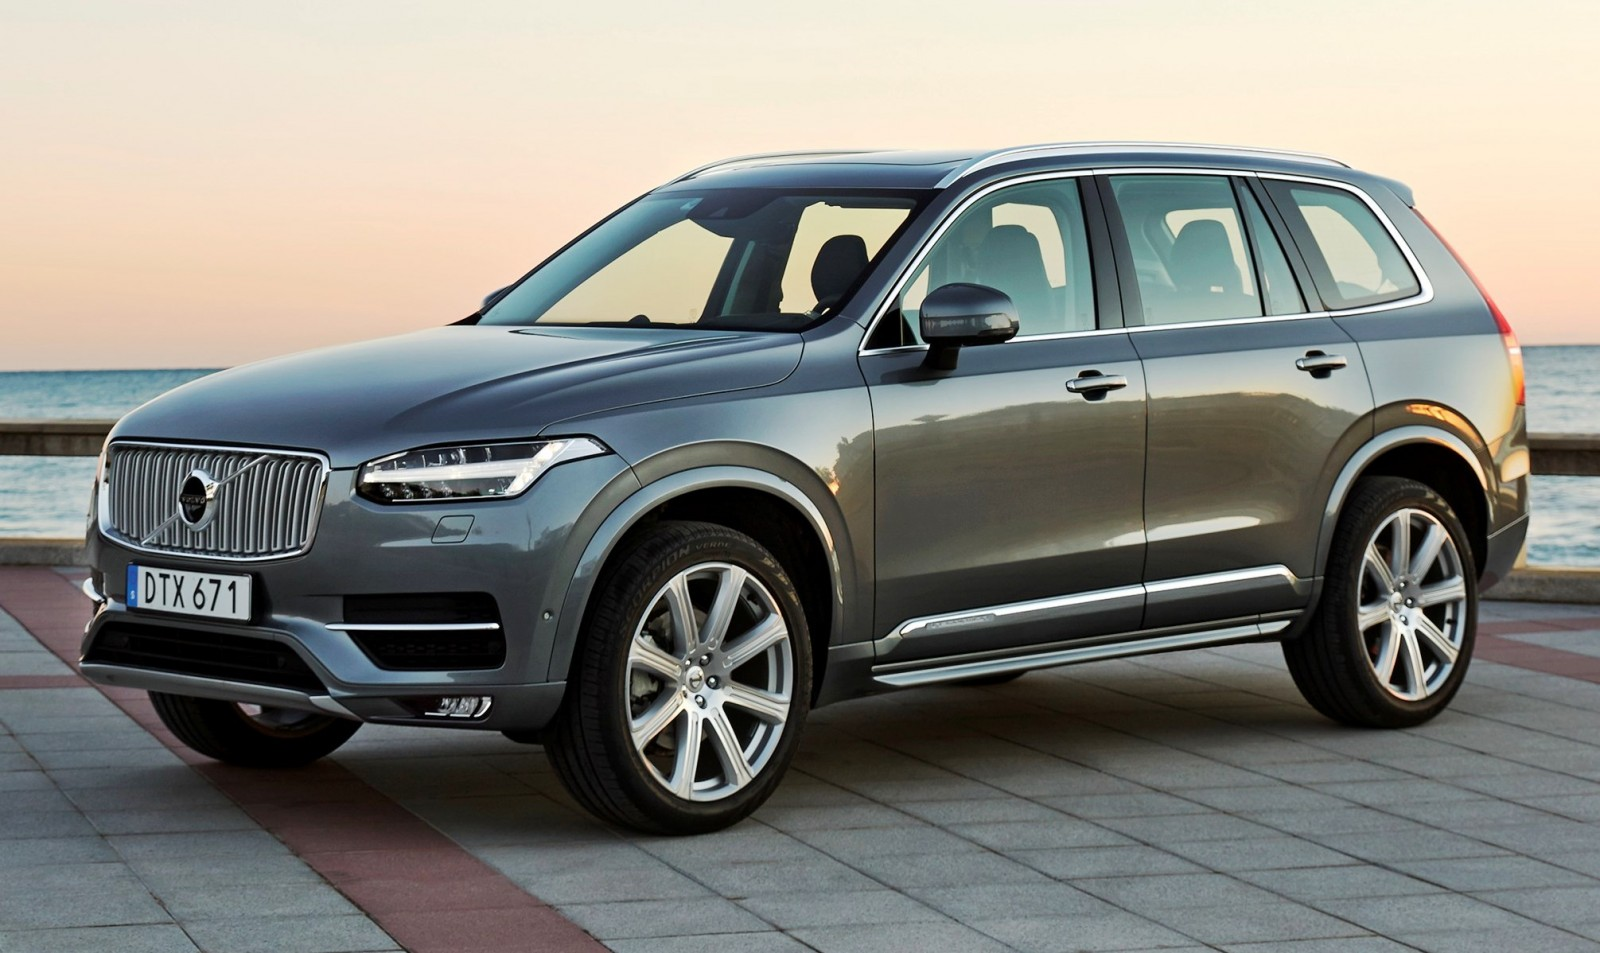 2016 volvo xc90. Black Bedroom Furniture Sets. Home Design Ideas